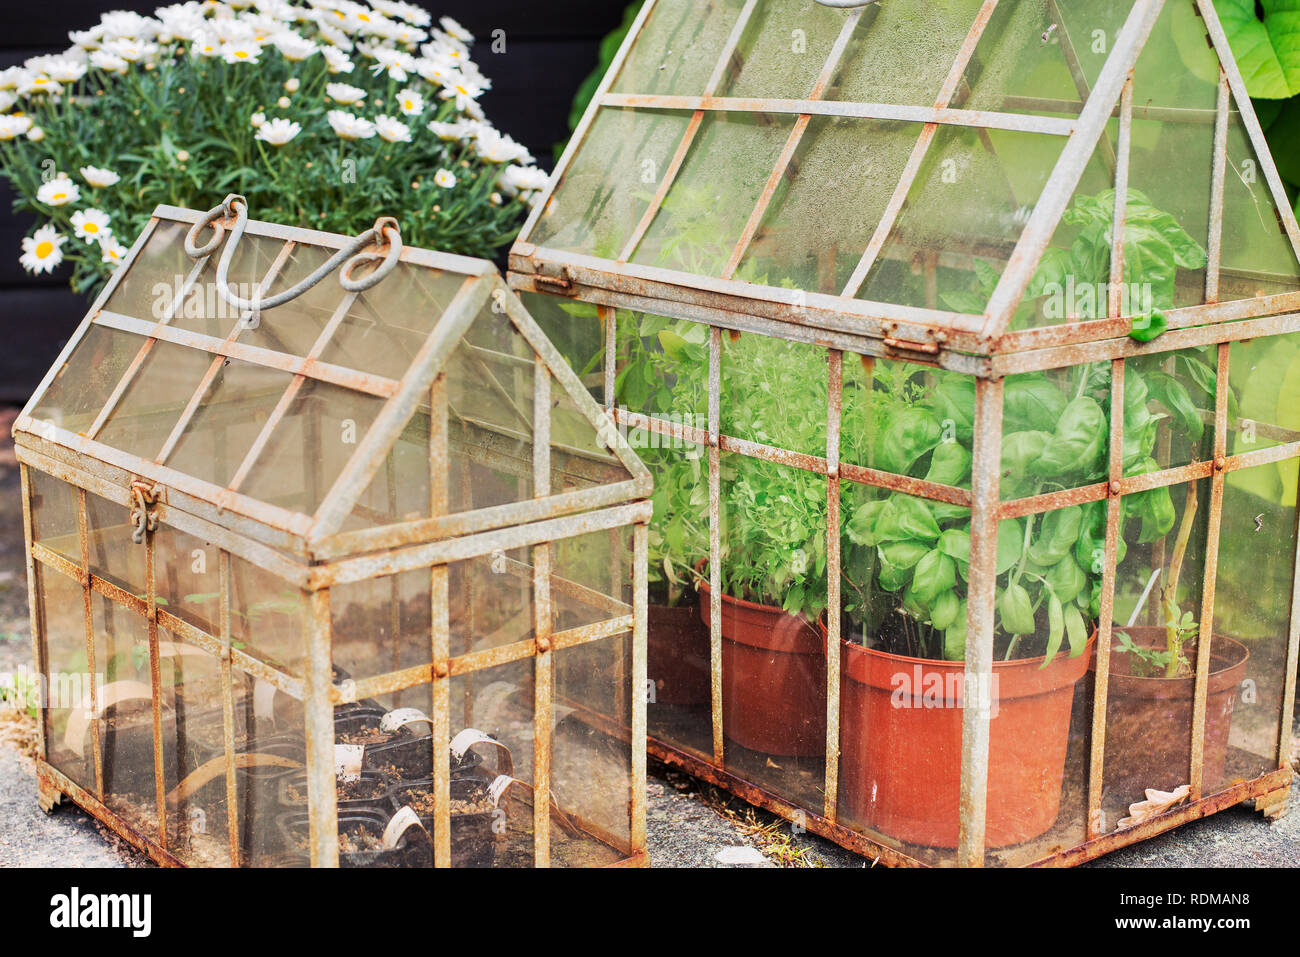 Fabulous Plants In Small Greenhouses Stock Photo 232172788 Alamy Home Interior And Landscaping Oversignezvosmurscom